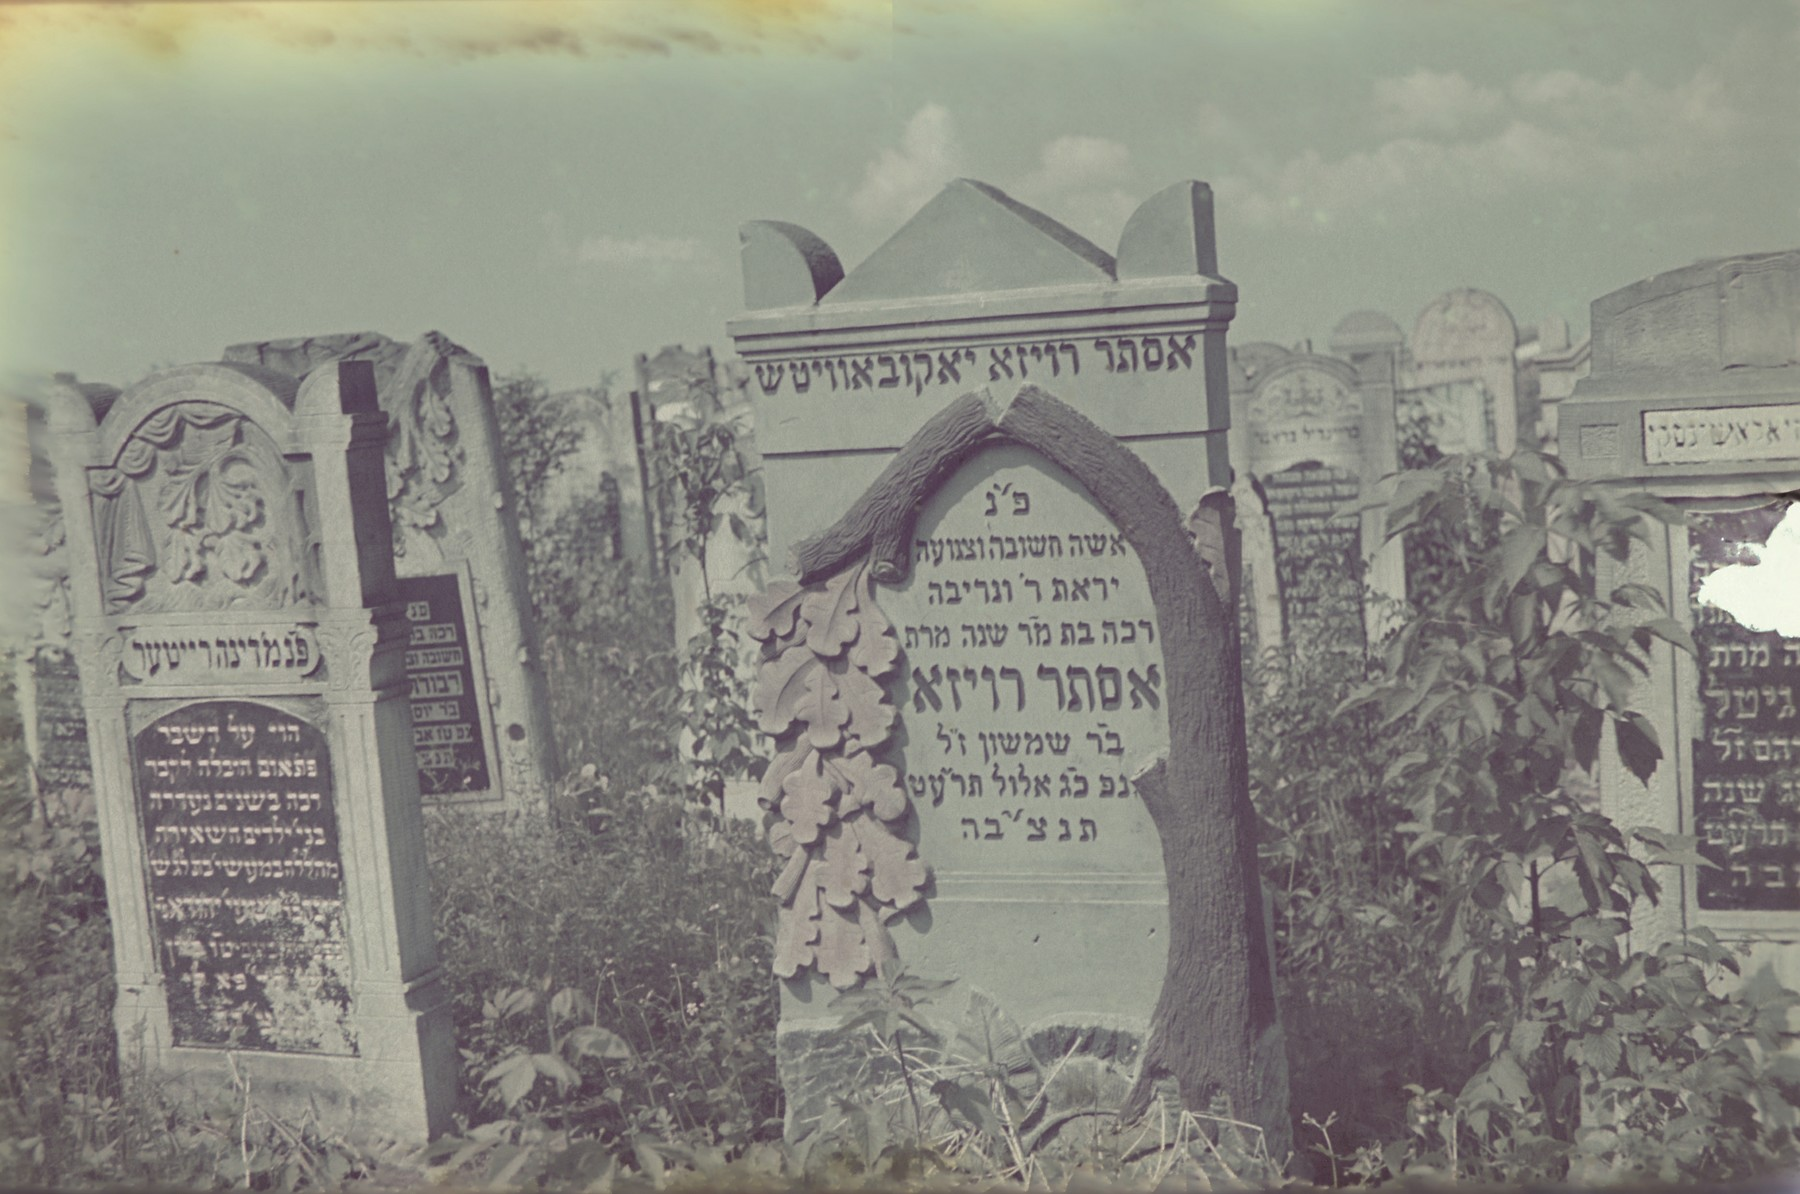 View of tombstones in the Lodz ghetto cemetery.